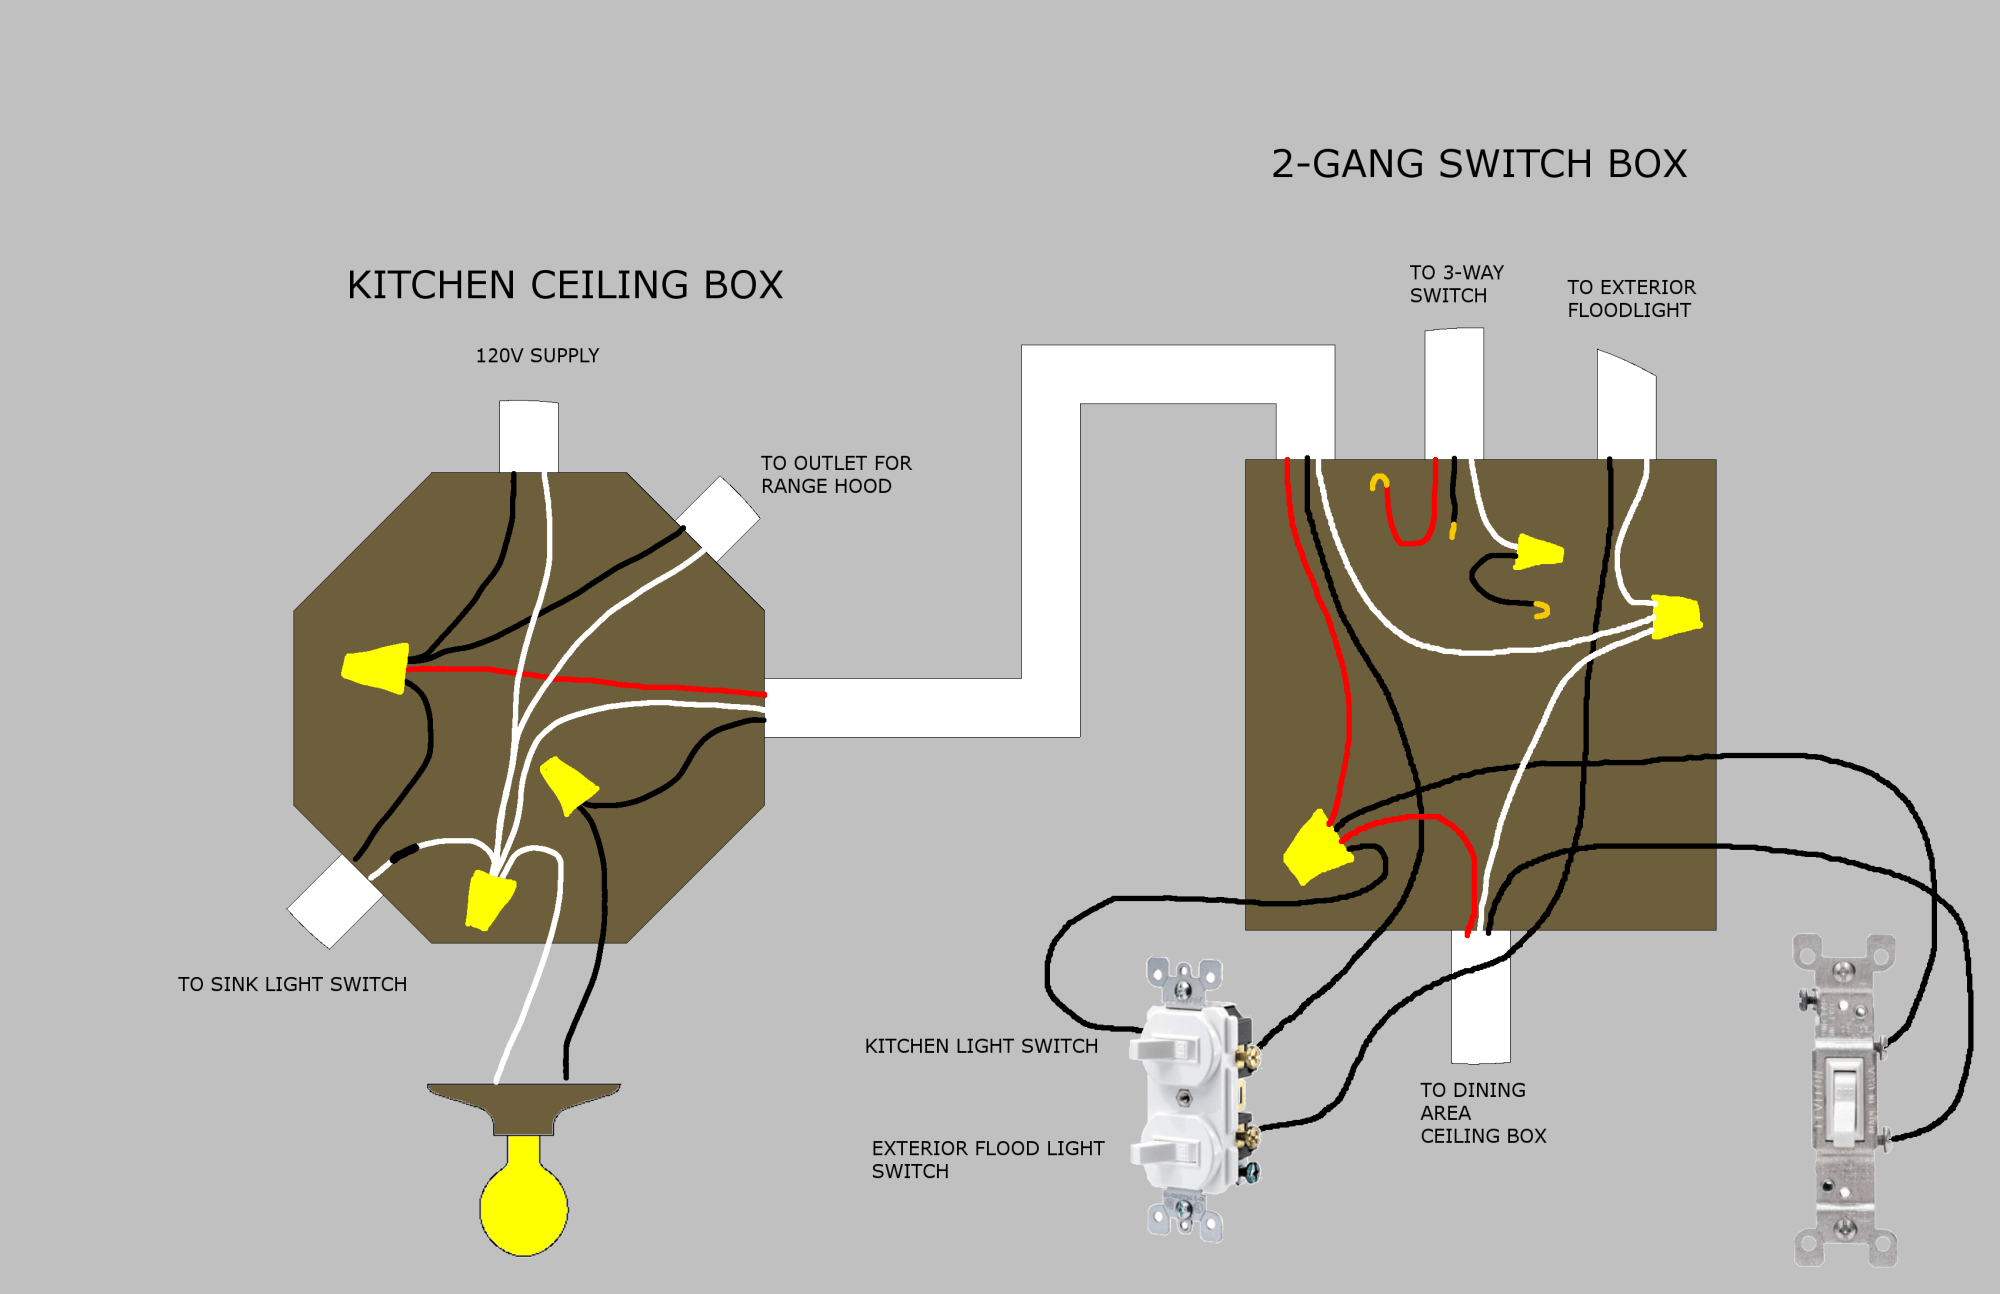 hight resolution of electrical is this ceiling box wiring correct and how can i two lights two switches diagram wiring 2 gang switch box